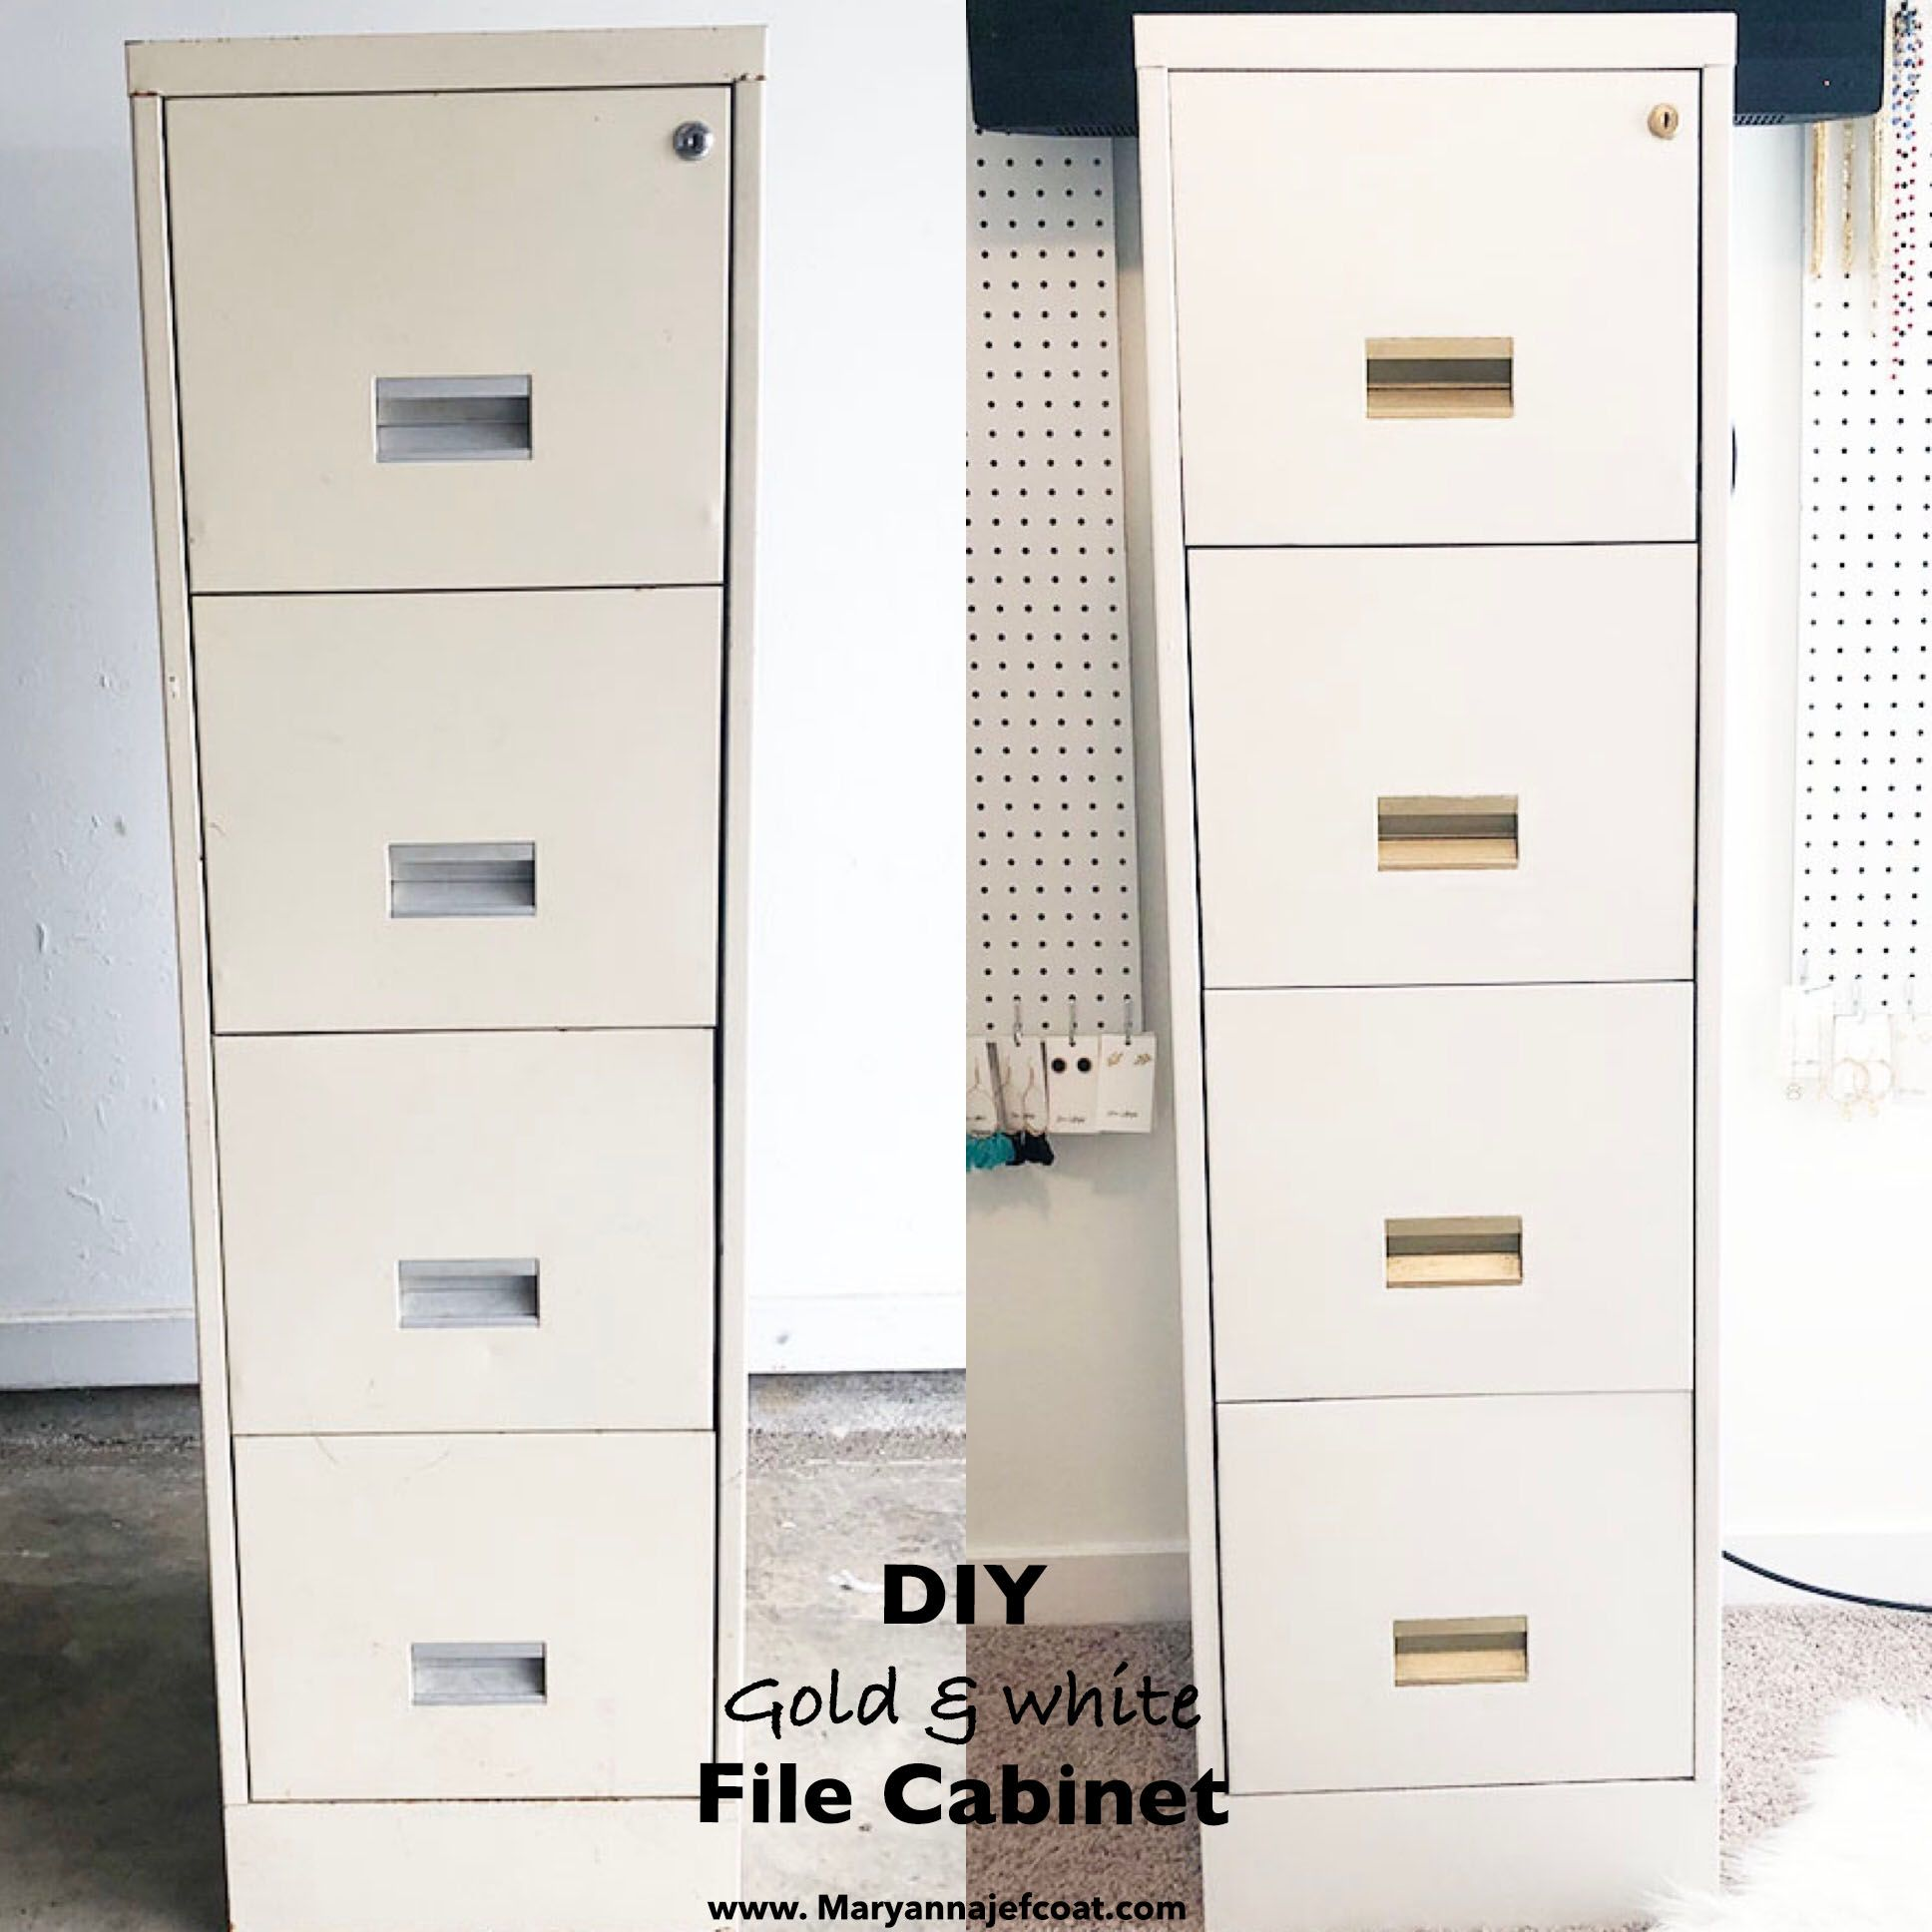 Diy Gold And White File Cabinet Chalk Painted File Cabinet Diy Gold Hardware Budget Office M Painted File Cabinets Diy File Cabinet File Cabinet Makeover